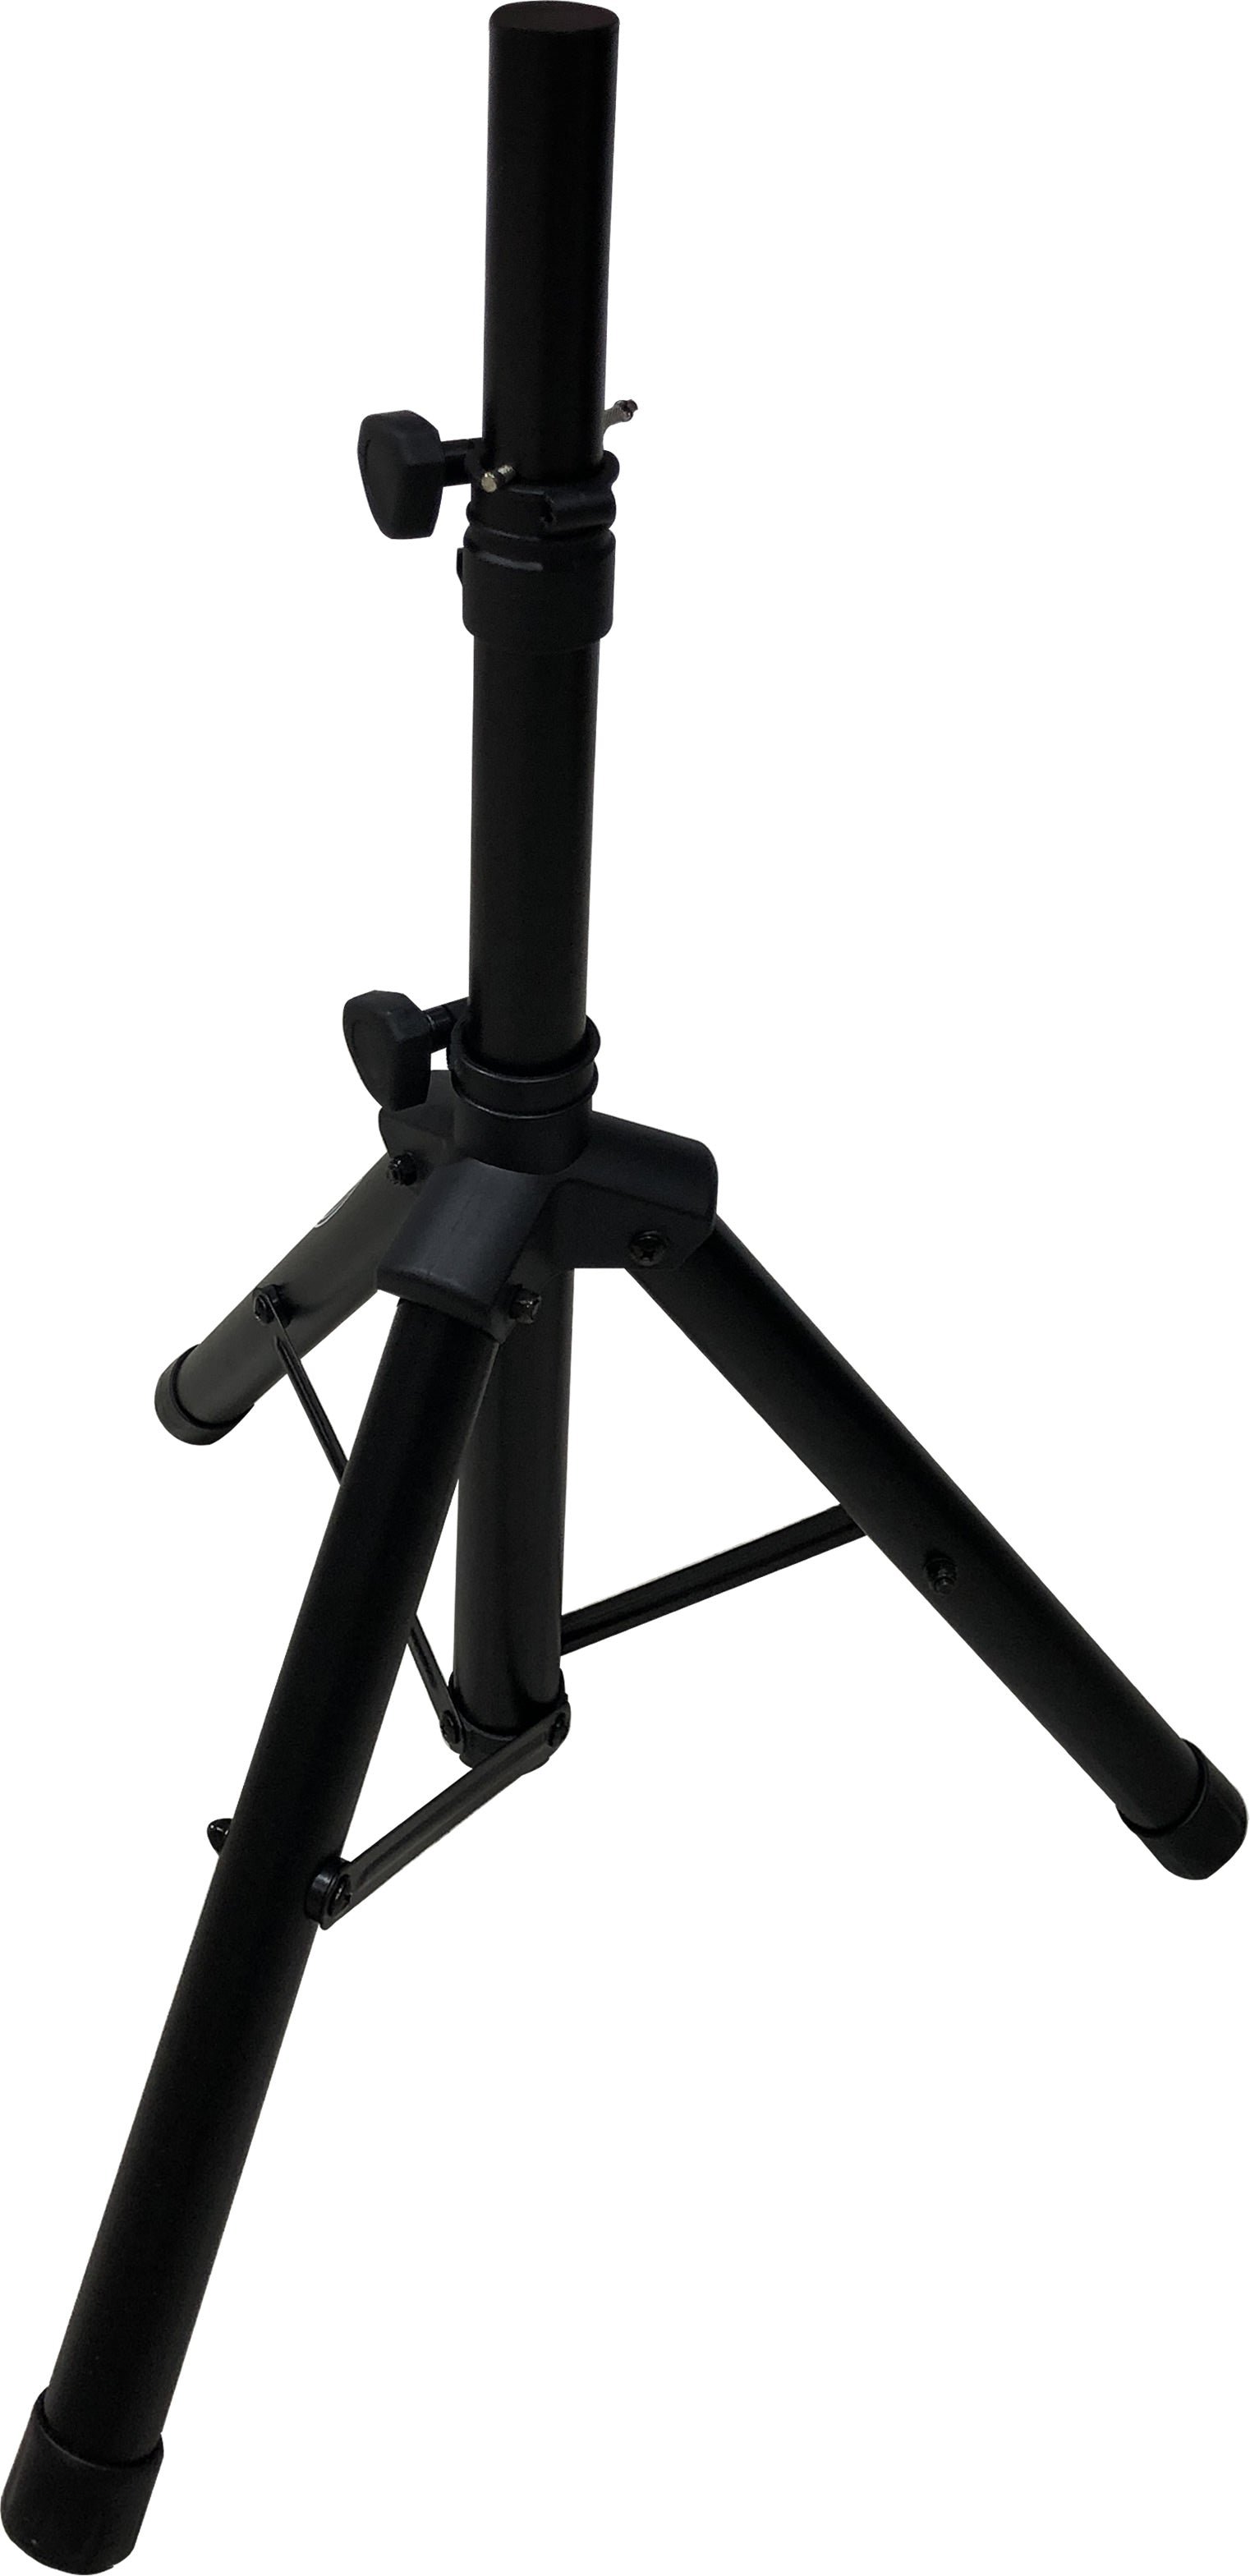 "96-4001-10 Heavy Duty Adjustable Tripod Speaker Stand for 10"" Speaker Box"